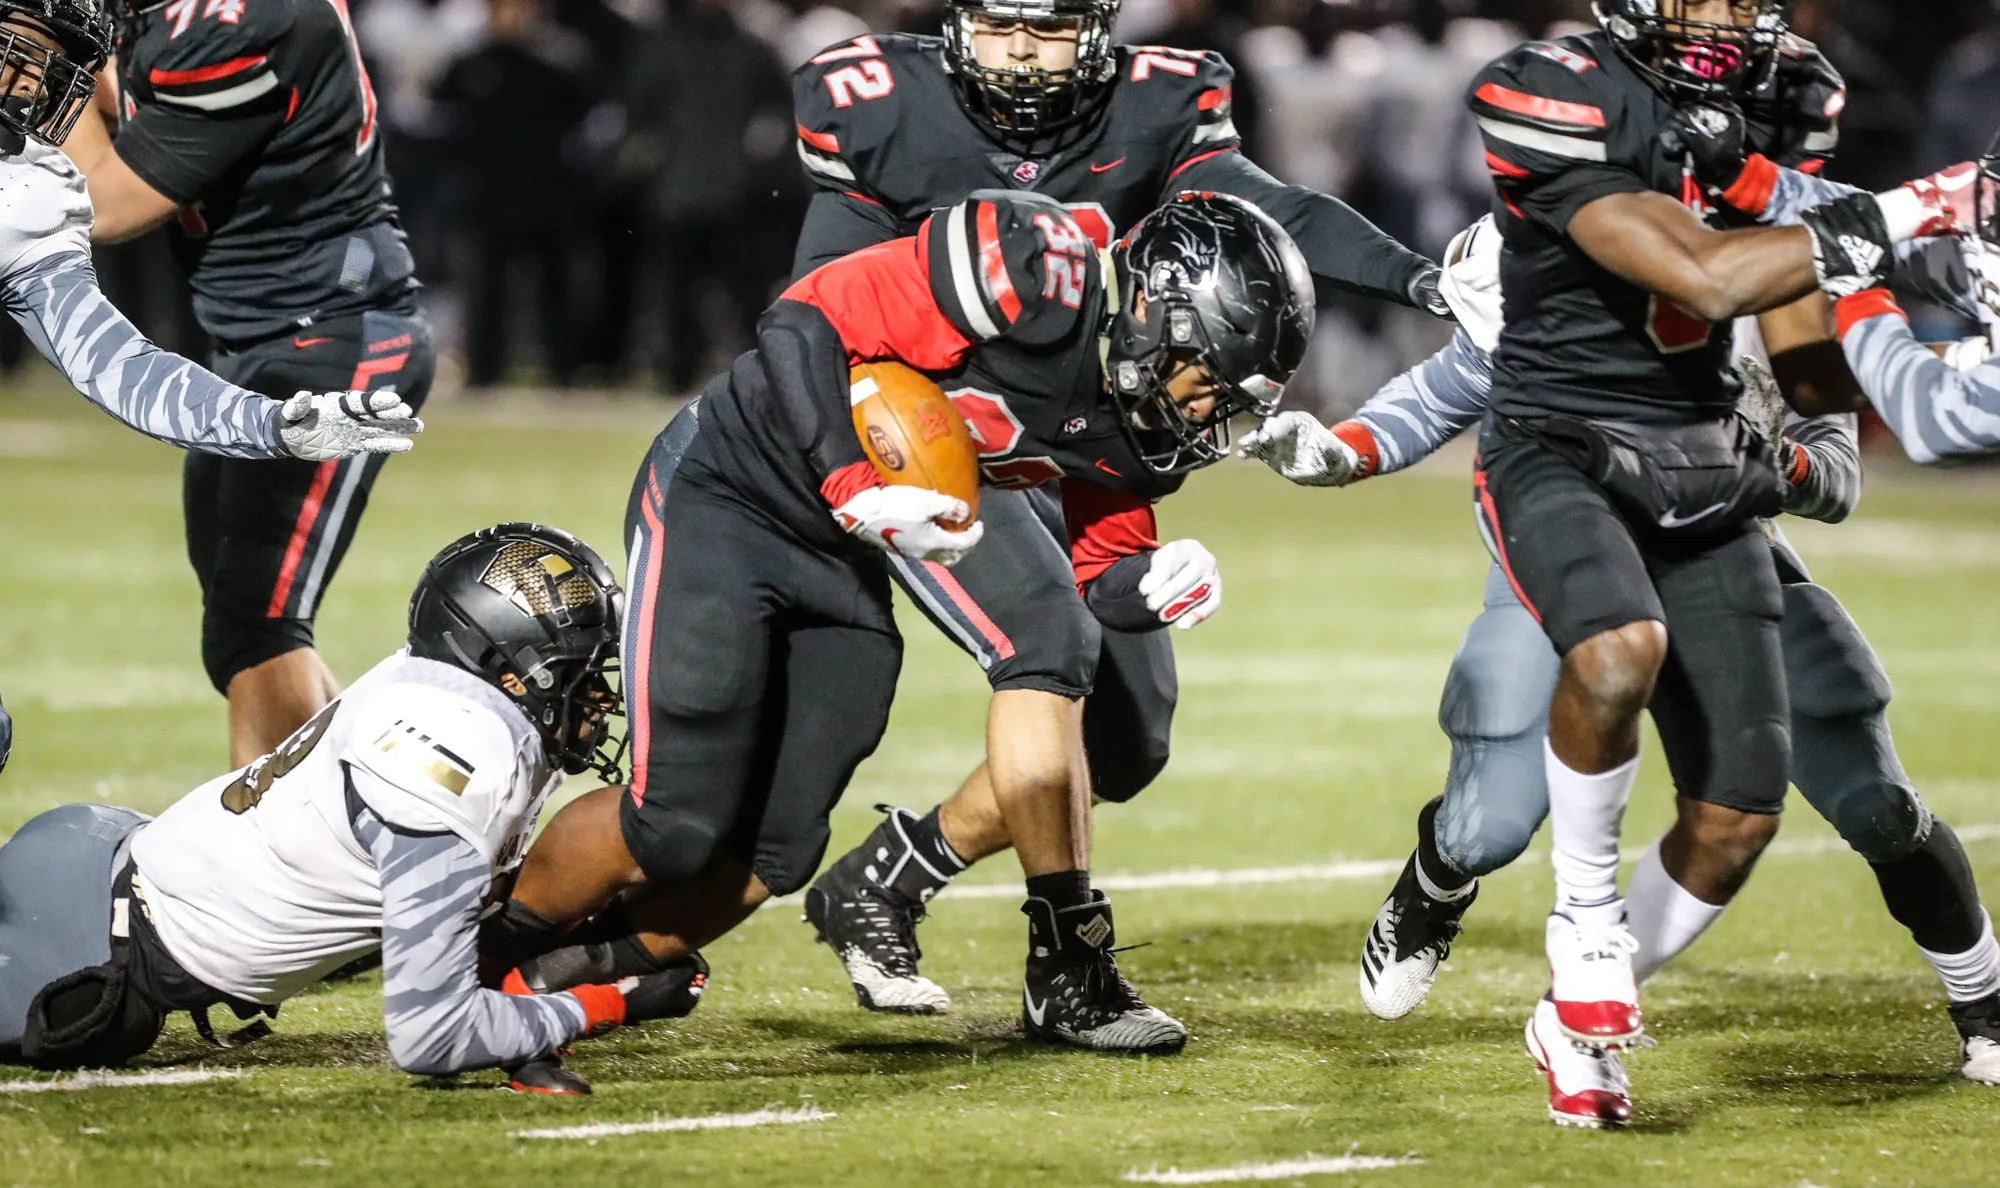 Indiana High School Football 2019 Sectional Semifinal Predictions